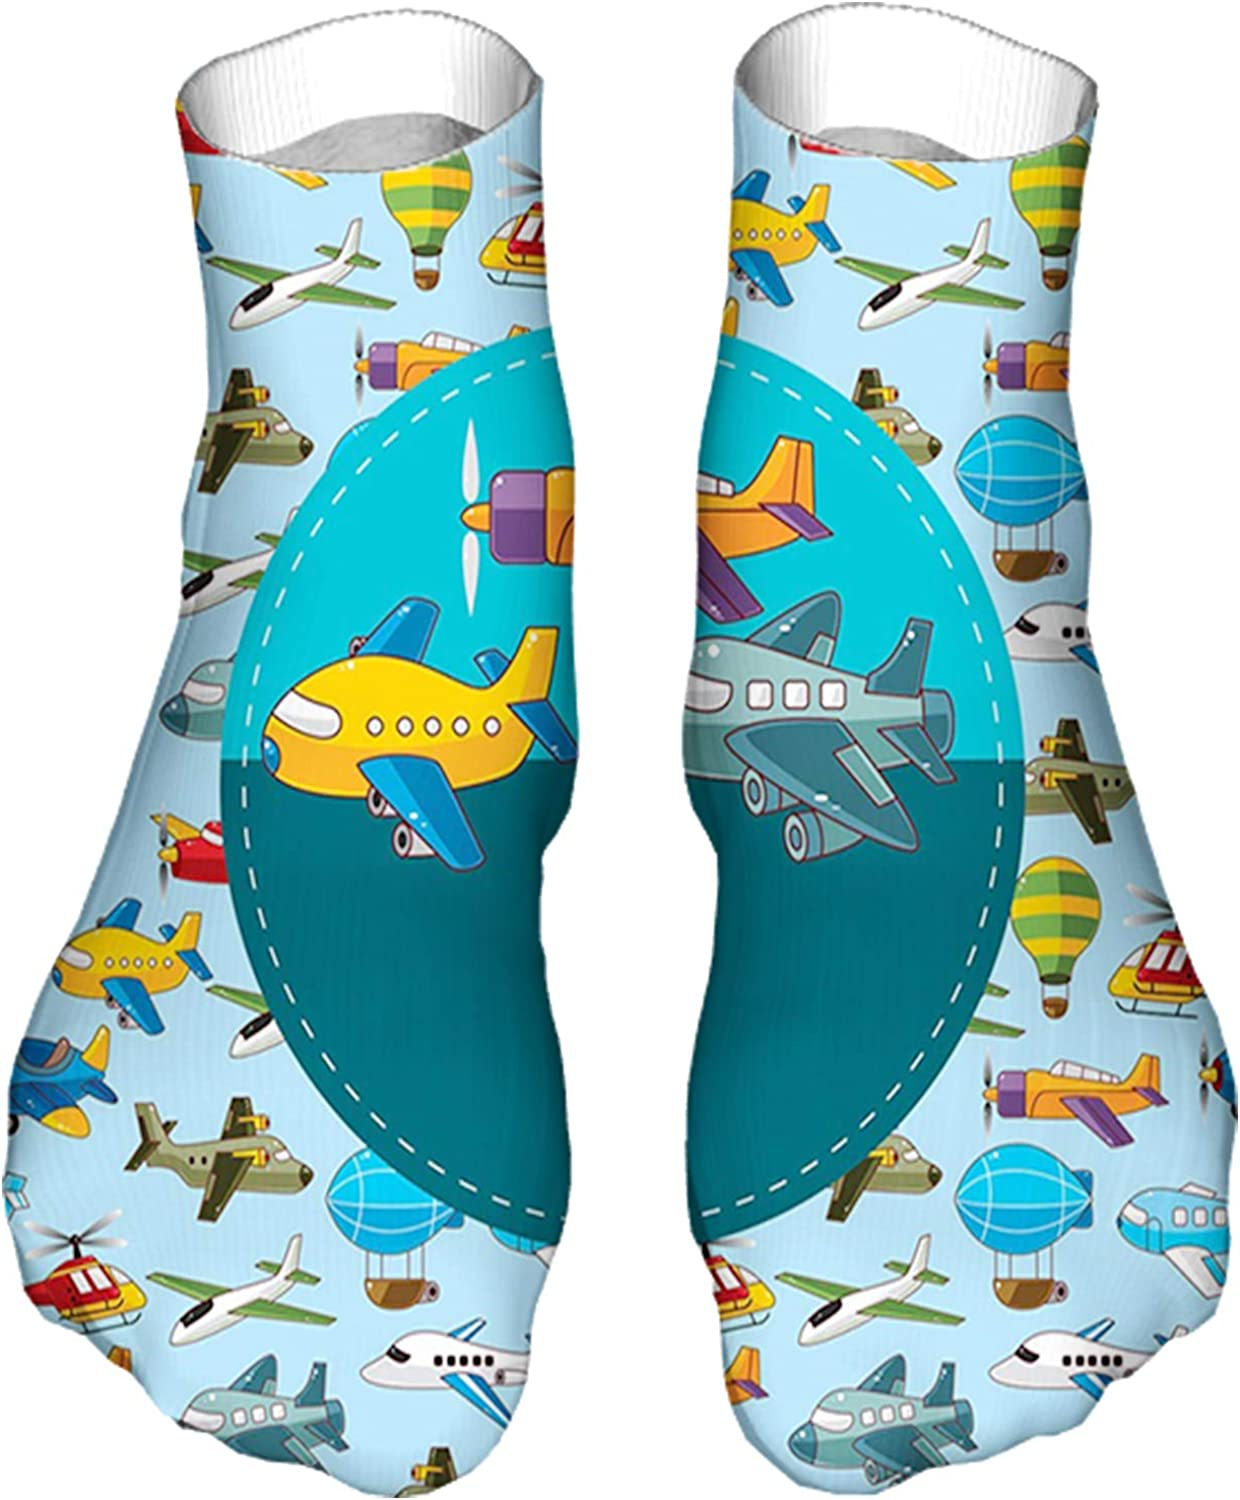 Men's and Women's Fun Socks Printed Cool Novelty Funny Socks,Colorful Retro Style Various Cartoon Airplanes Air Balloons